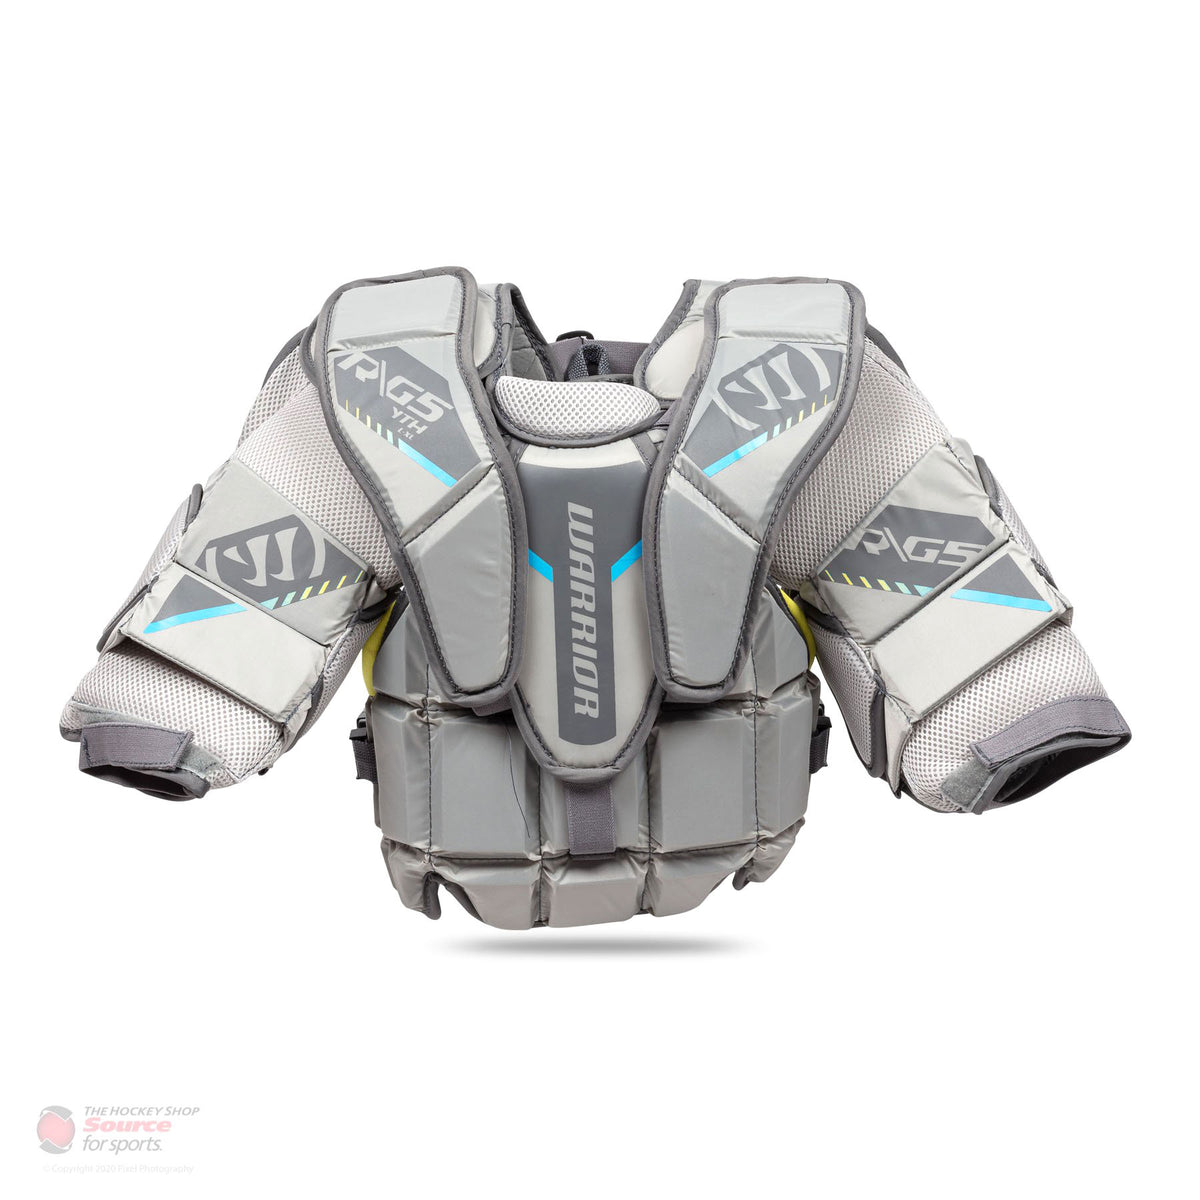 Warrior Ritual G5 Youth Chest & Arm Protector